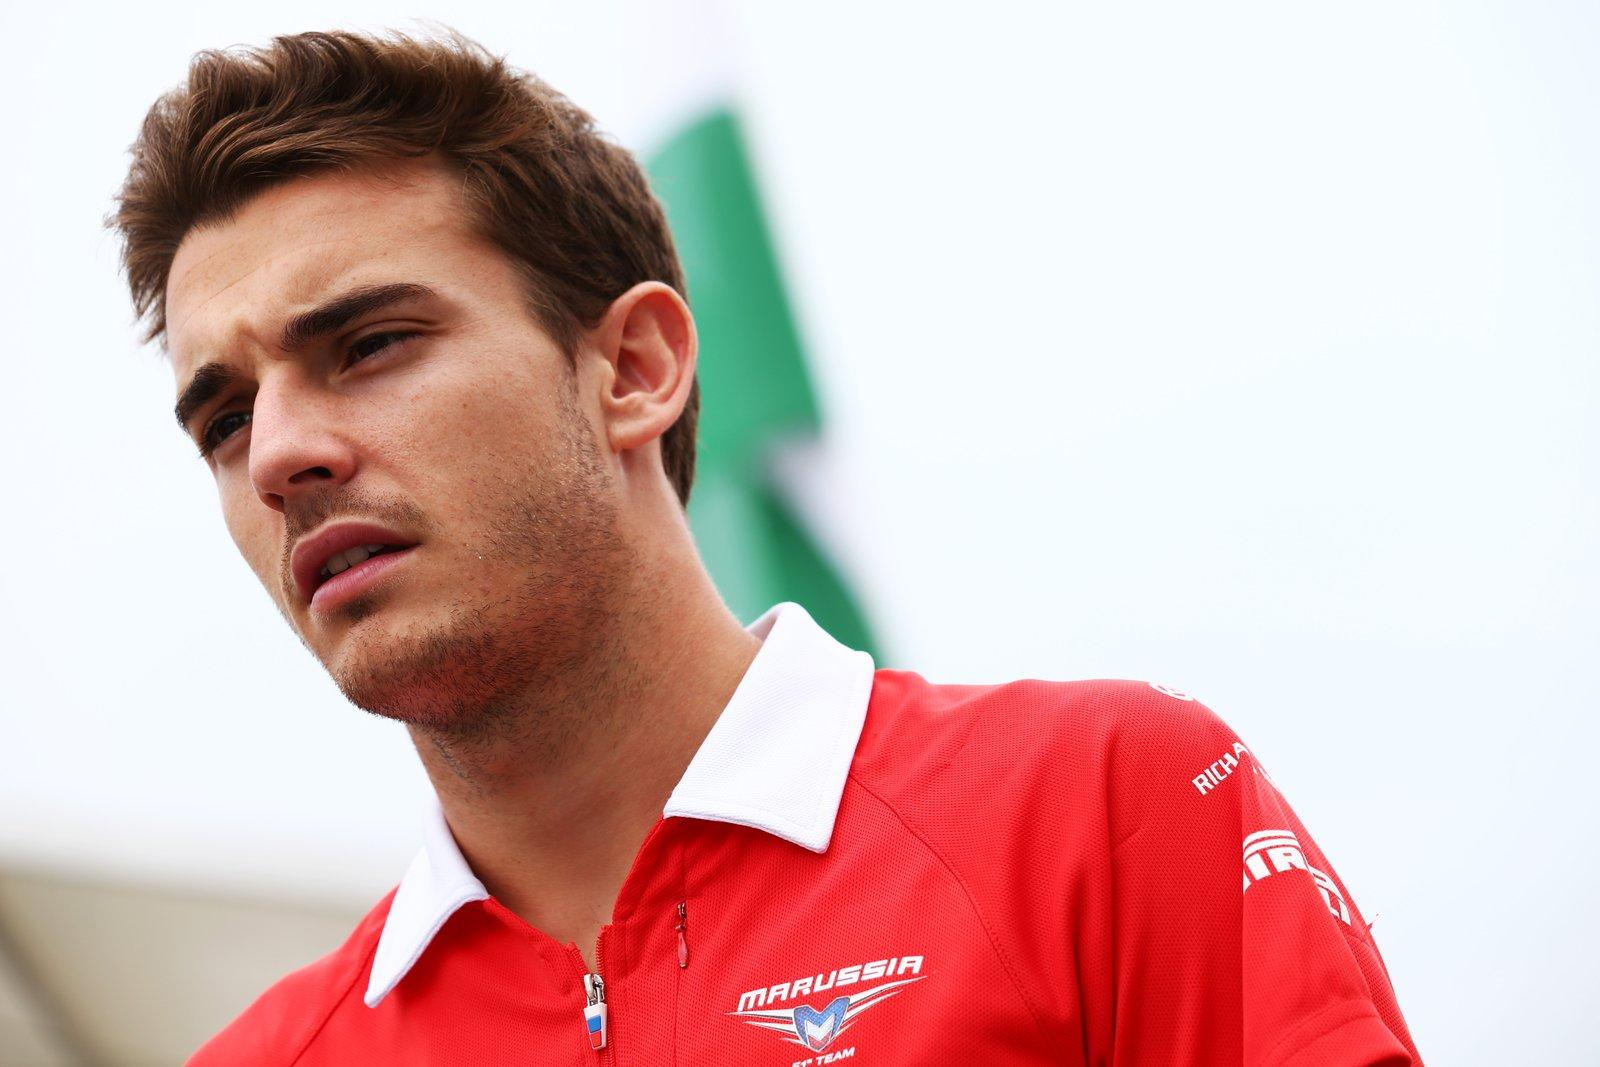 F1 Driver Jules Bianchi Passes Away At 25 After Japanese